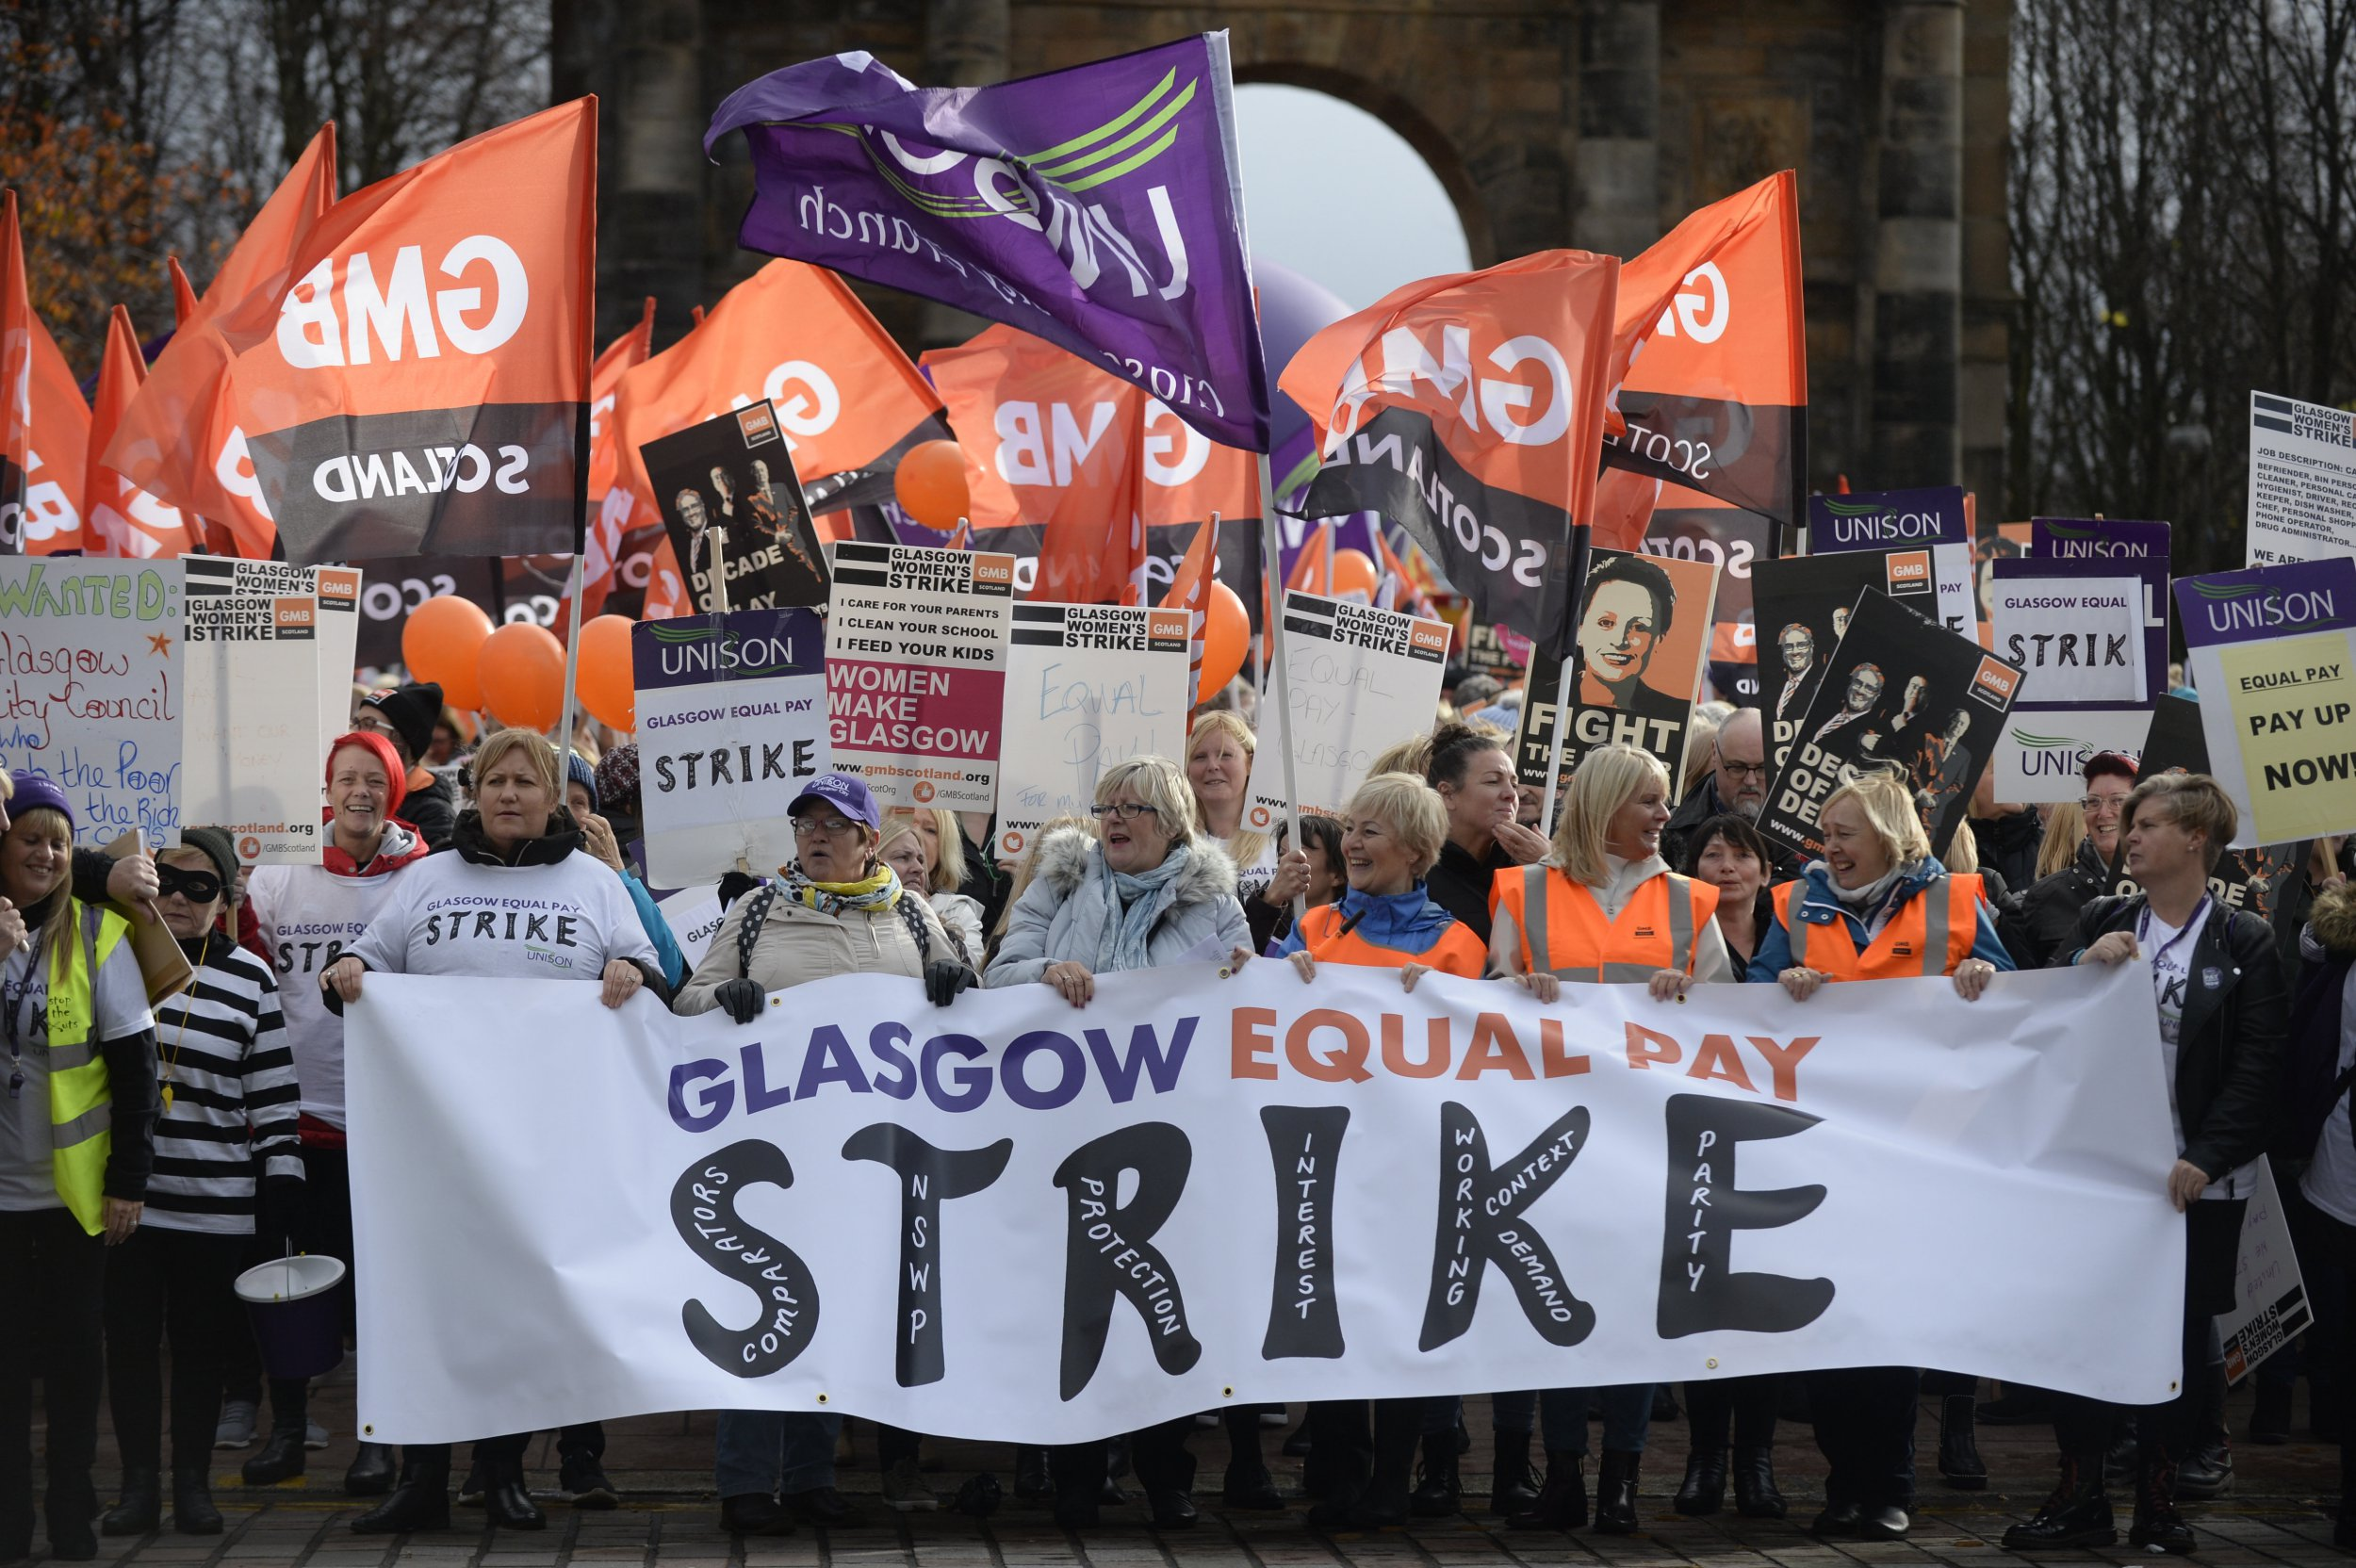 Some 8,000 women council workers marching through Glasgow as they start a two day strike over equal pay. October 23, 2018. Schools, art galleries, and care services are expected to close over the strike